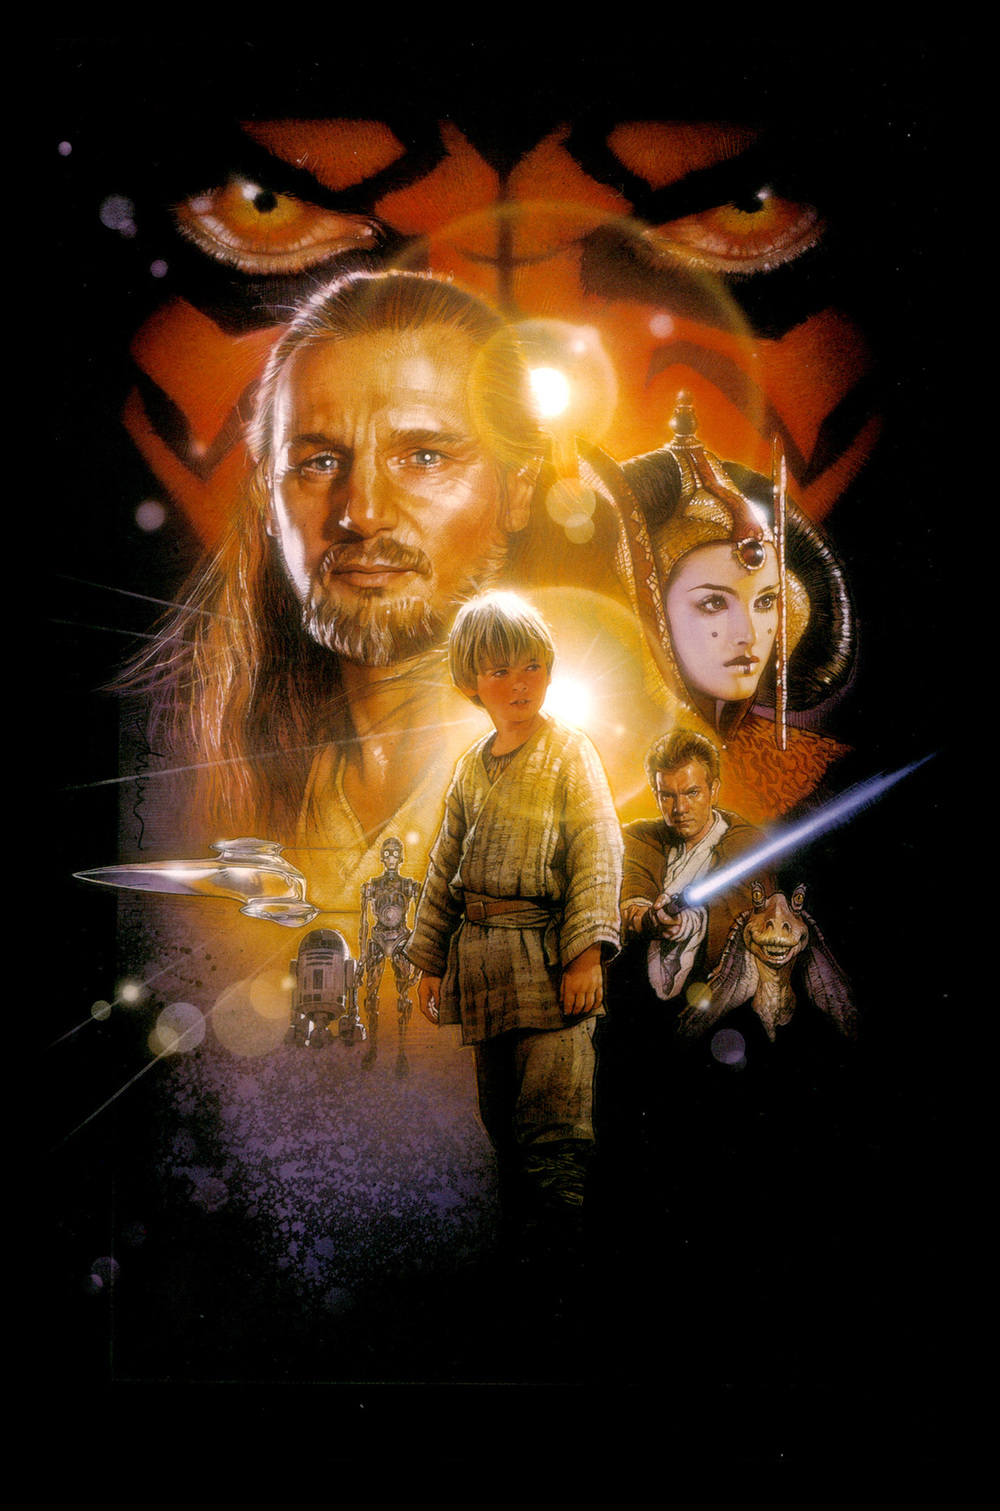 Star Wars, Ep. I La Amenaza Fantasma (1999) - George Lucas